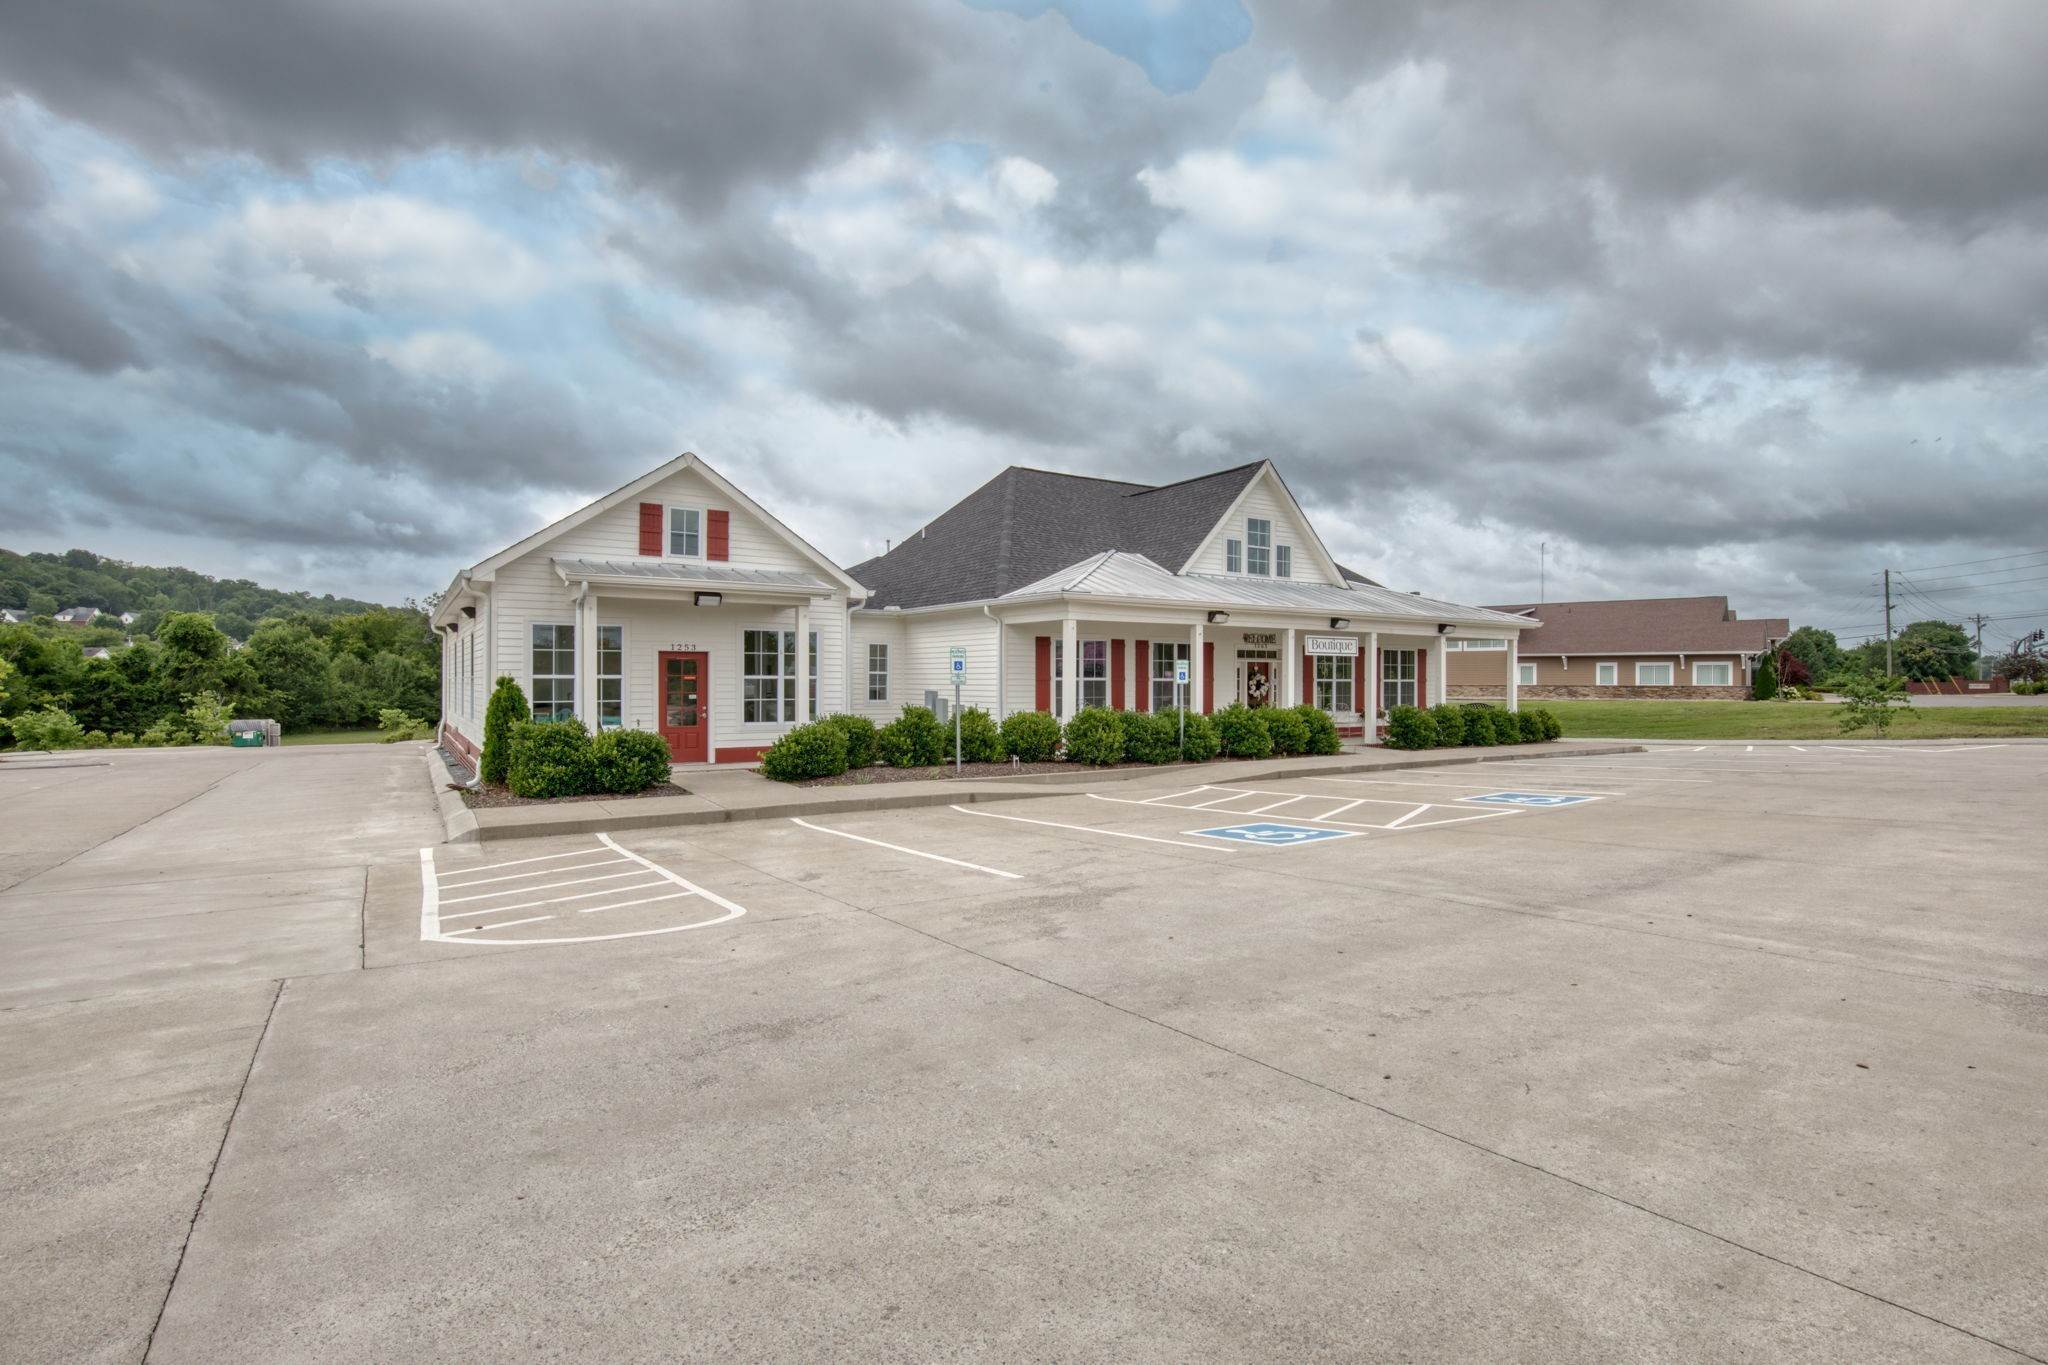 Commercial for Sale at 1253 Rock Springs Road Smyrna, Tennessee 37167 United States